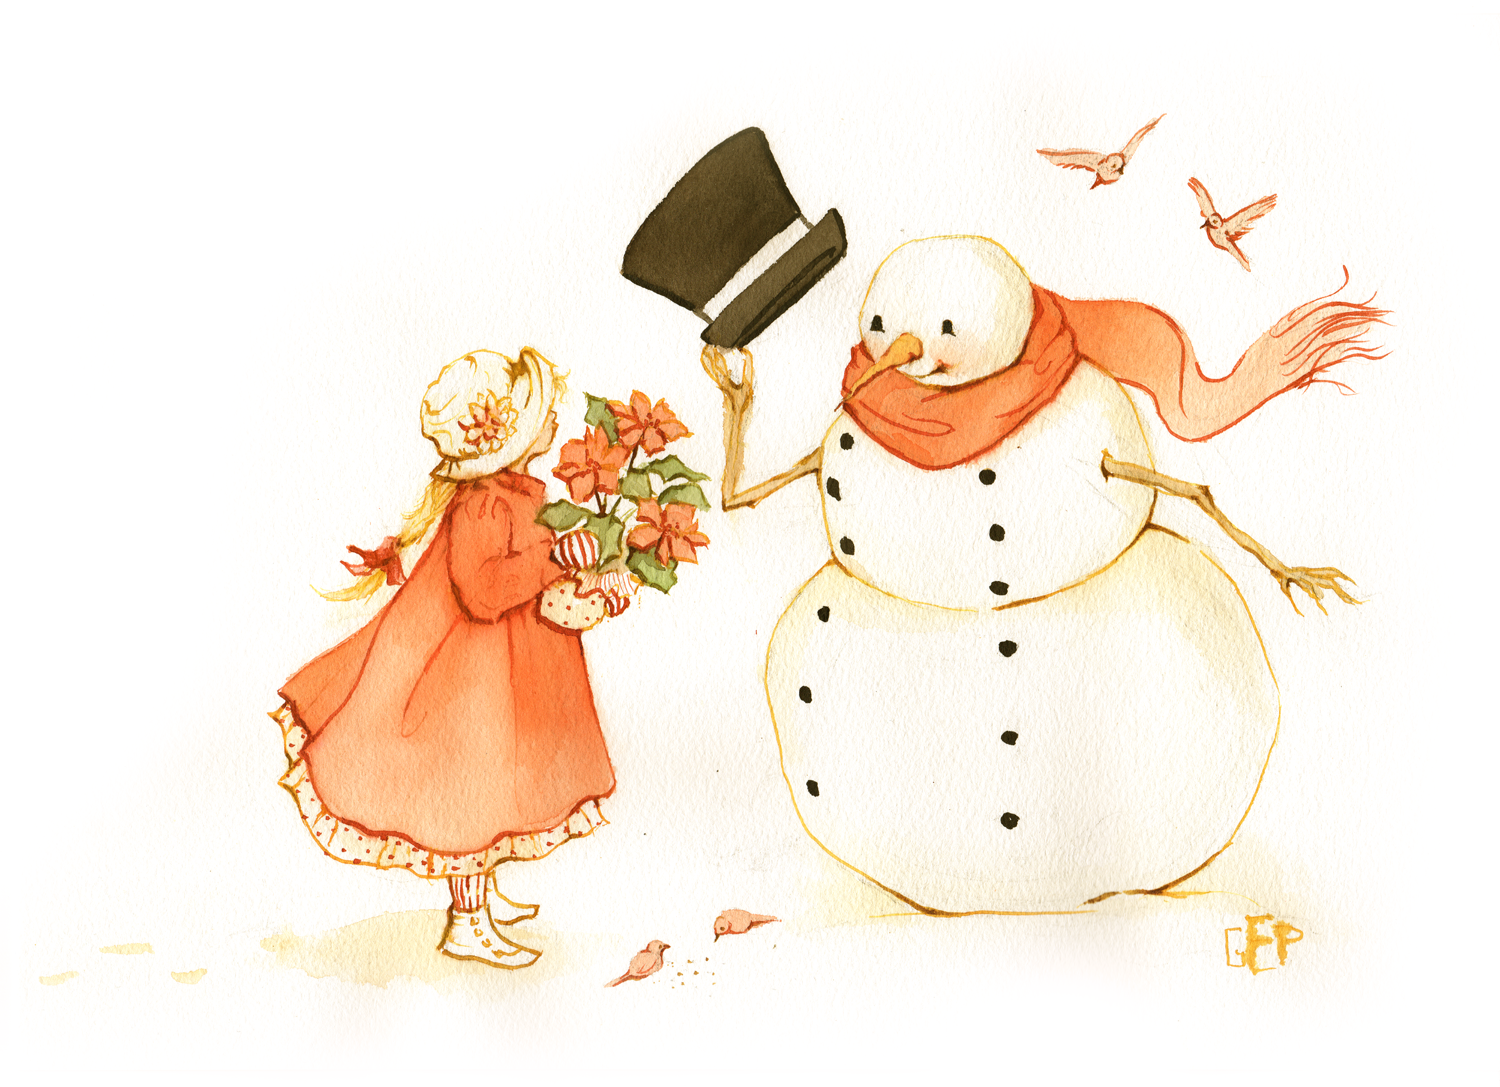 warm-wishes-from-a-snowman.png